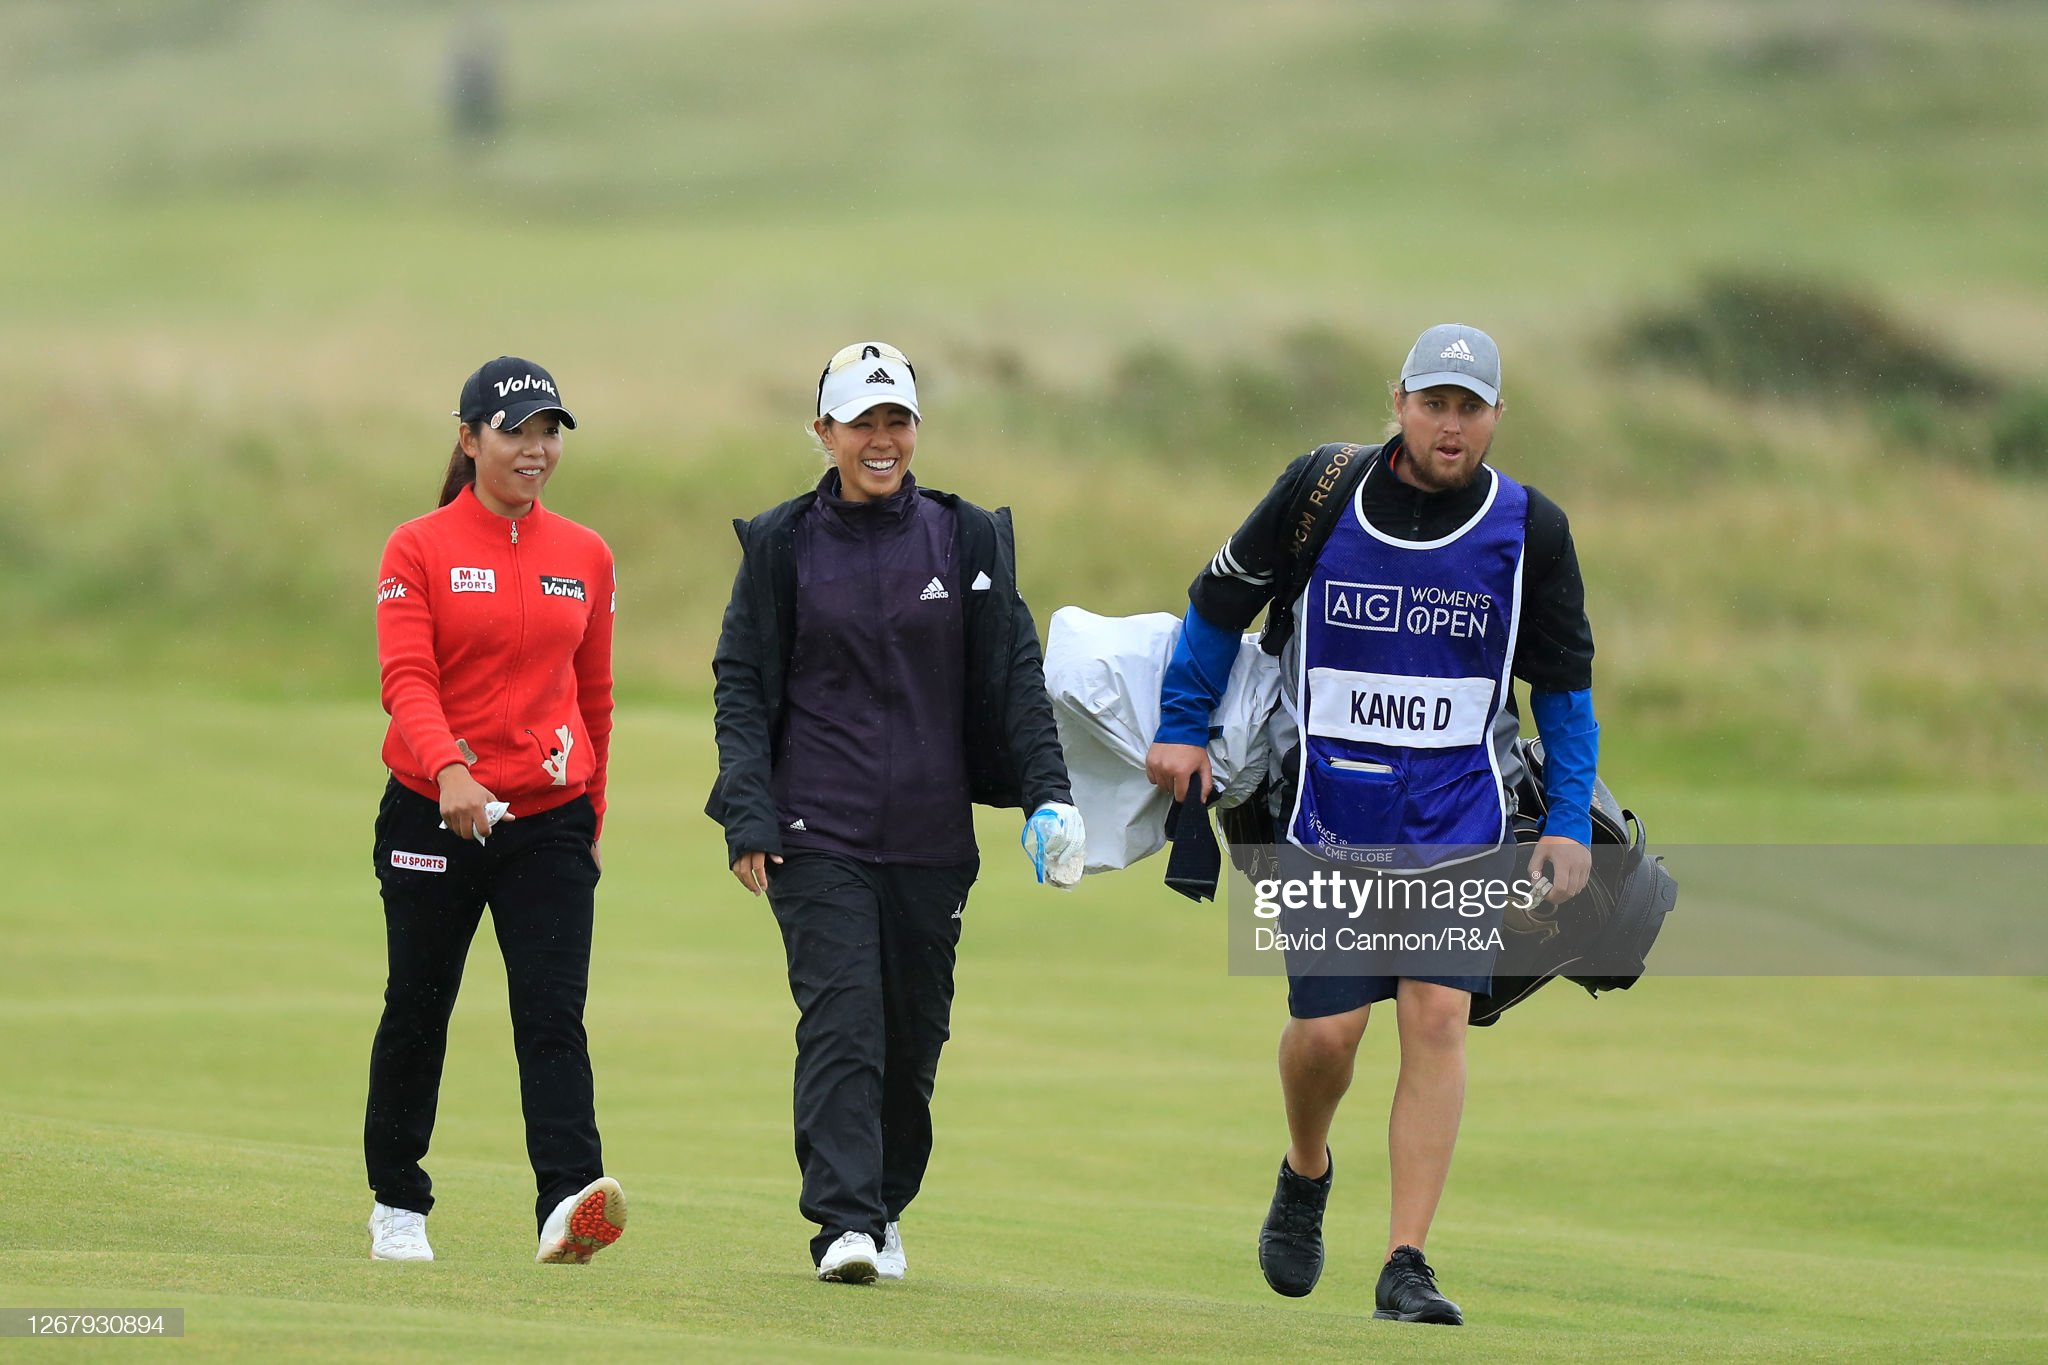 https://media.gettyimages.com/photos/minjeelee-of-australia-walks-with-daniellekang-of-the-united-states-picture-id1267930894?s=2048x2048